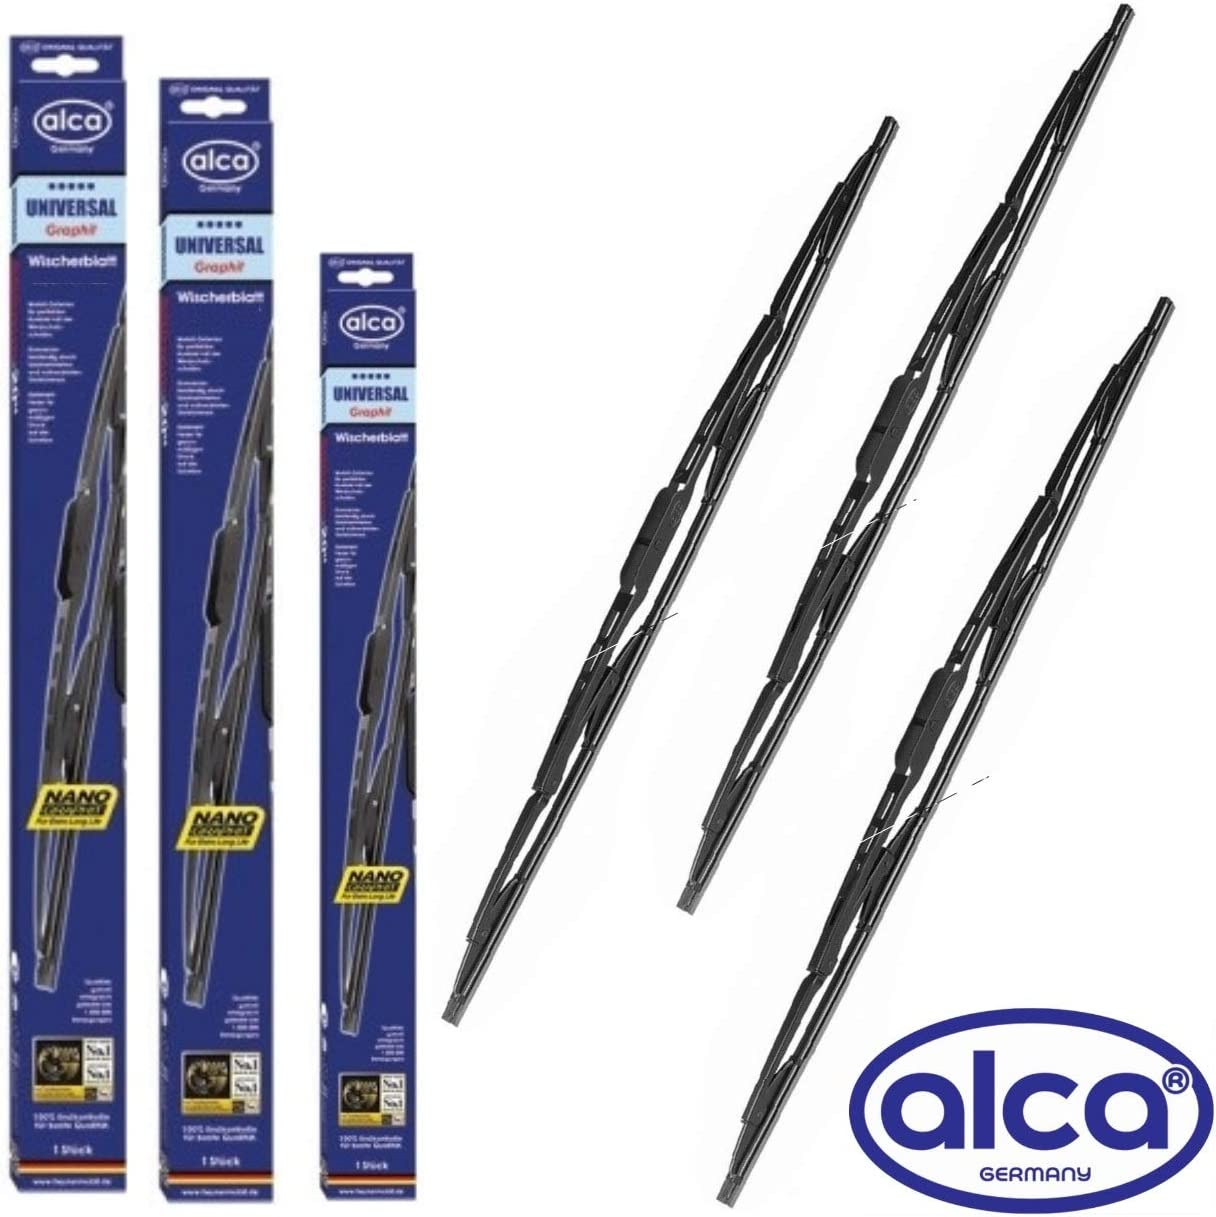 Replacement WIPER BLADES Ford Fiesta 2002 2003 2004 2005 2006 2007 2008 Full set